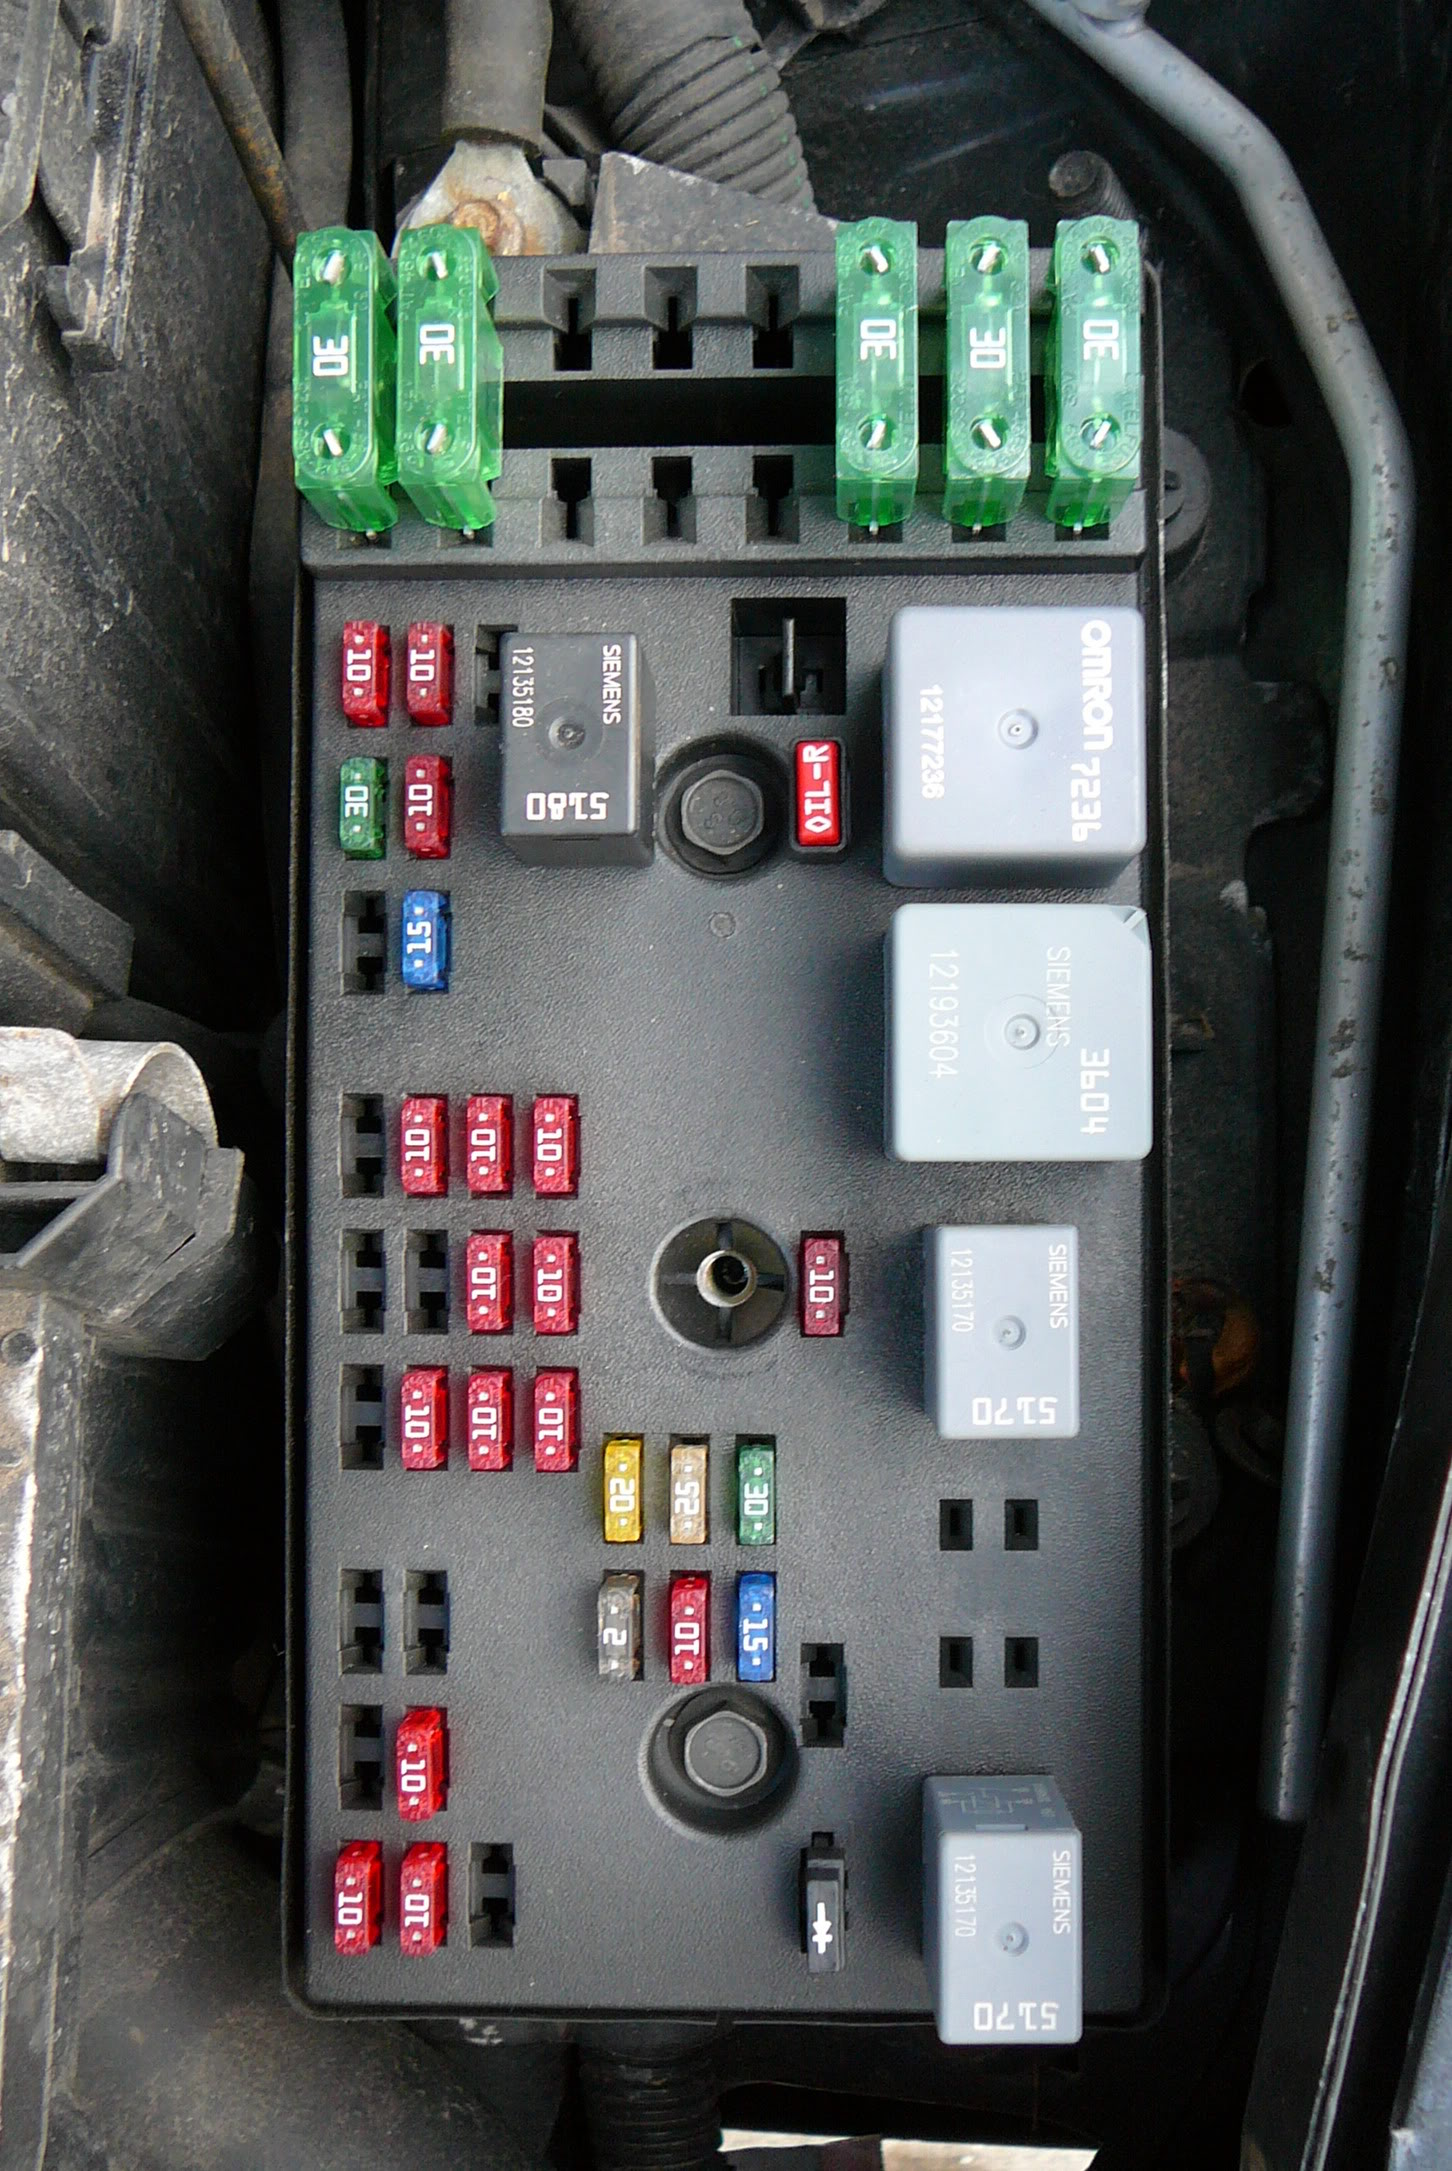 2001 saturn sc1 radio wiring diagram for boat ignition switch sl1 fuse box • free